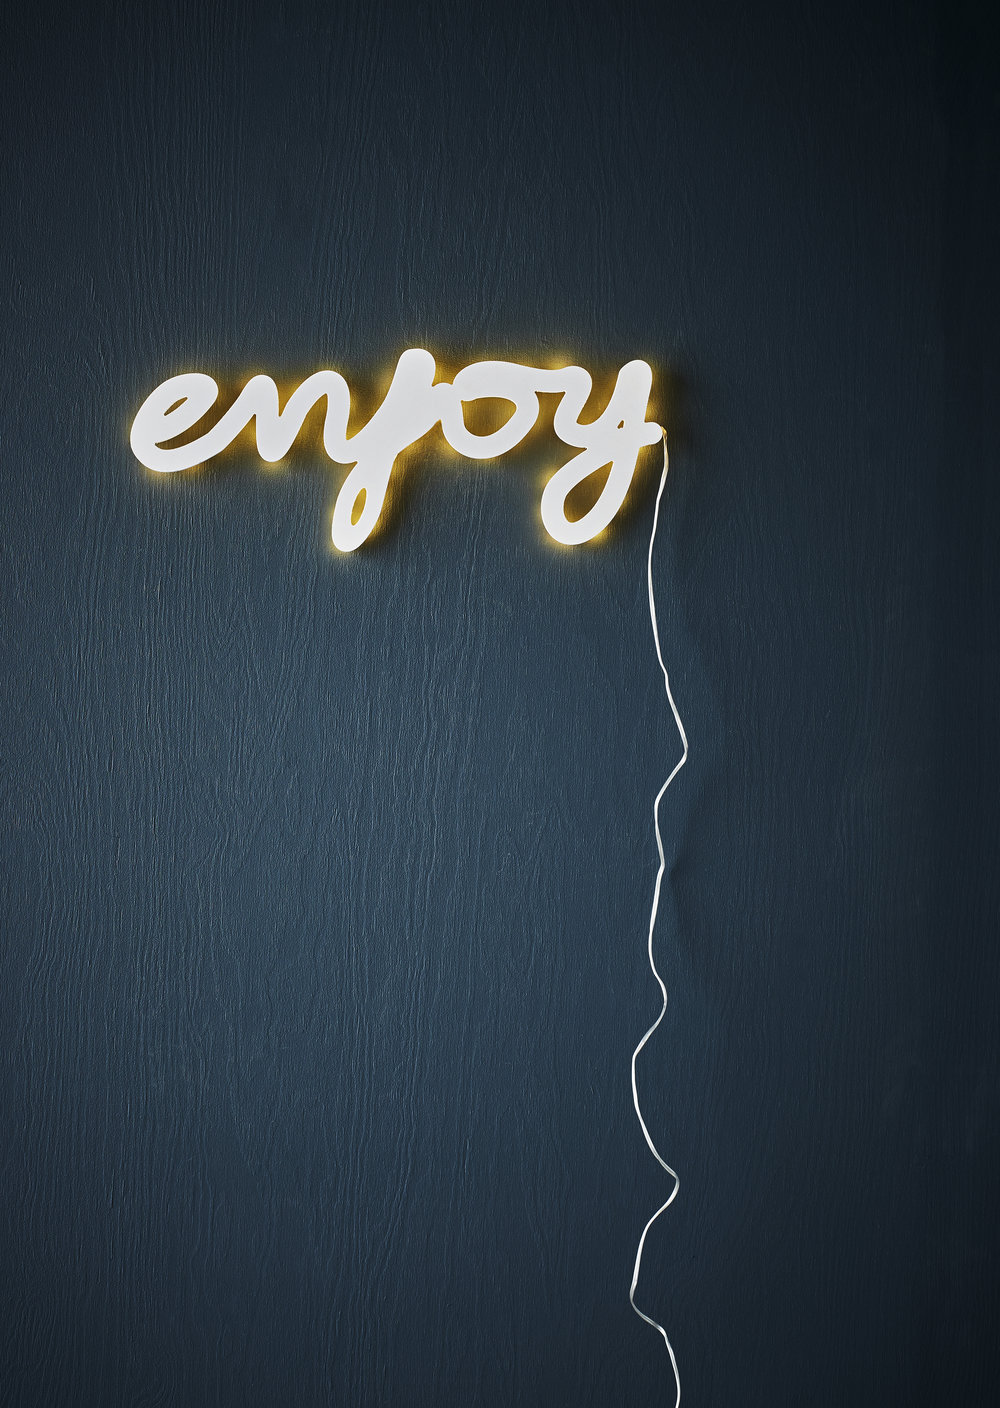 enjoy light sign.jpg